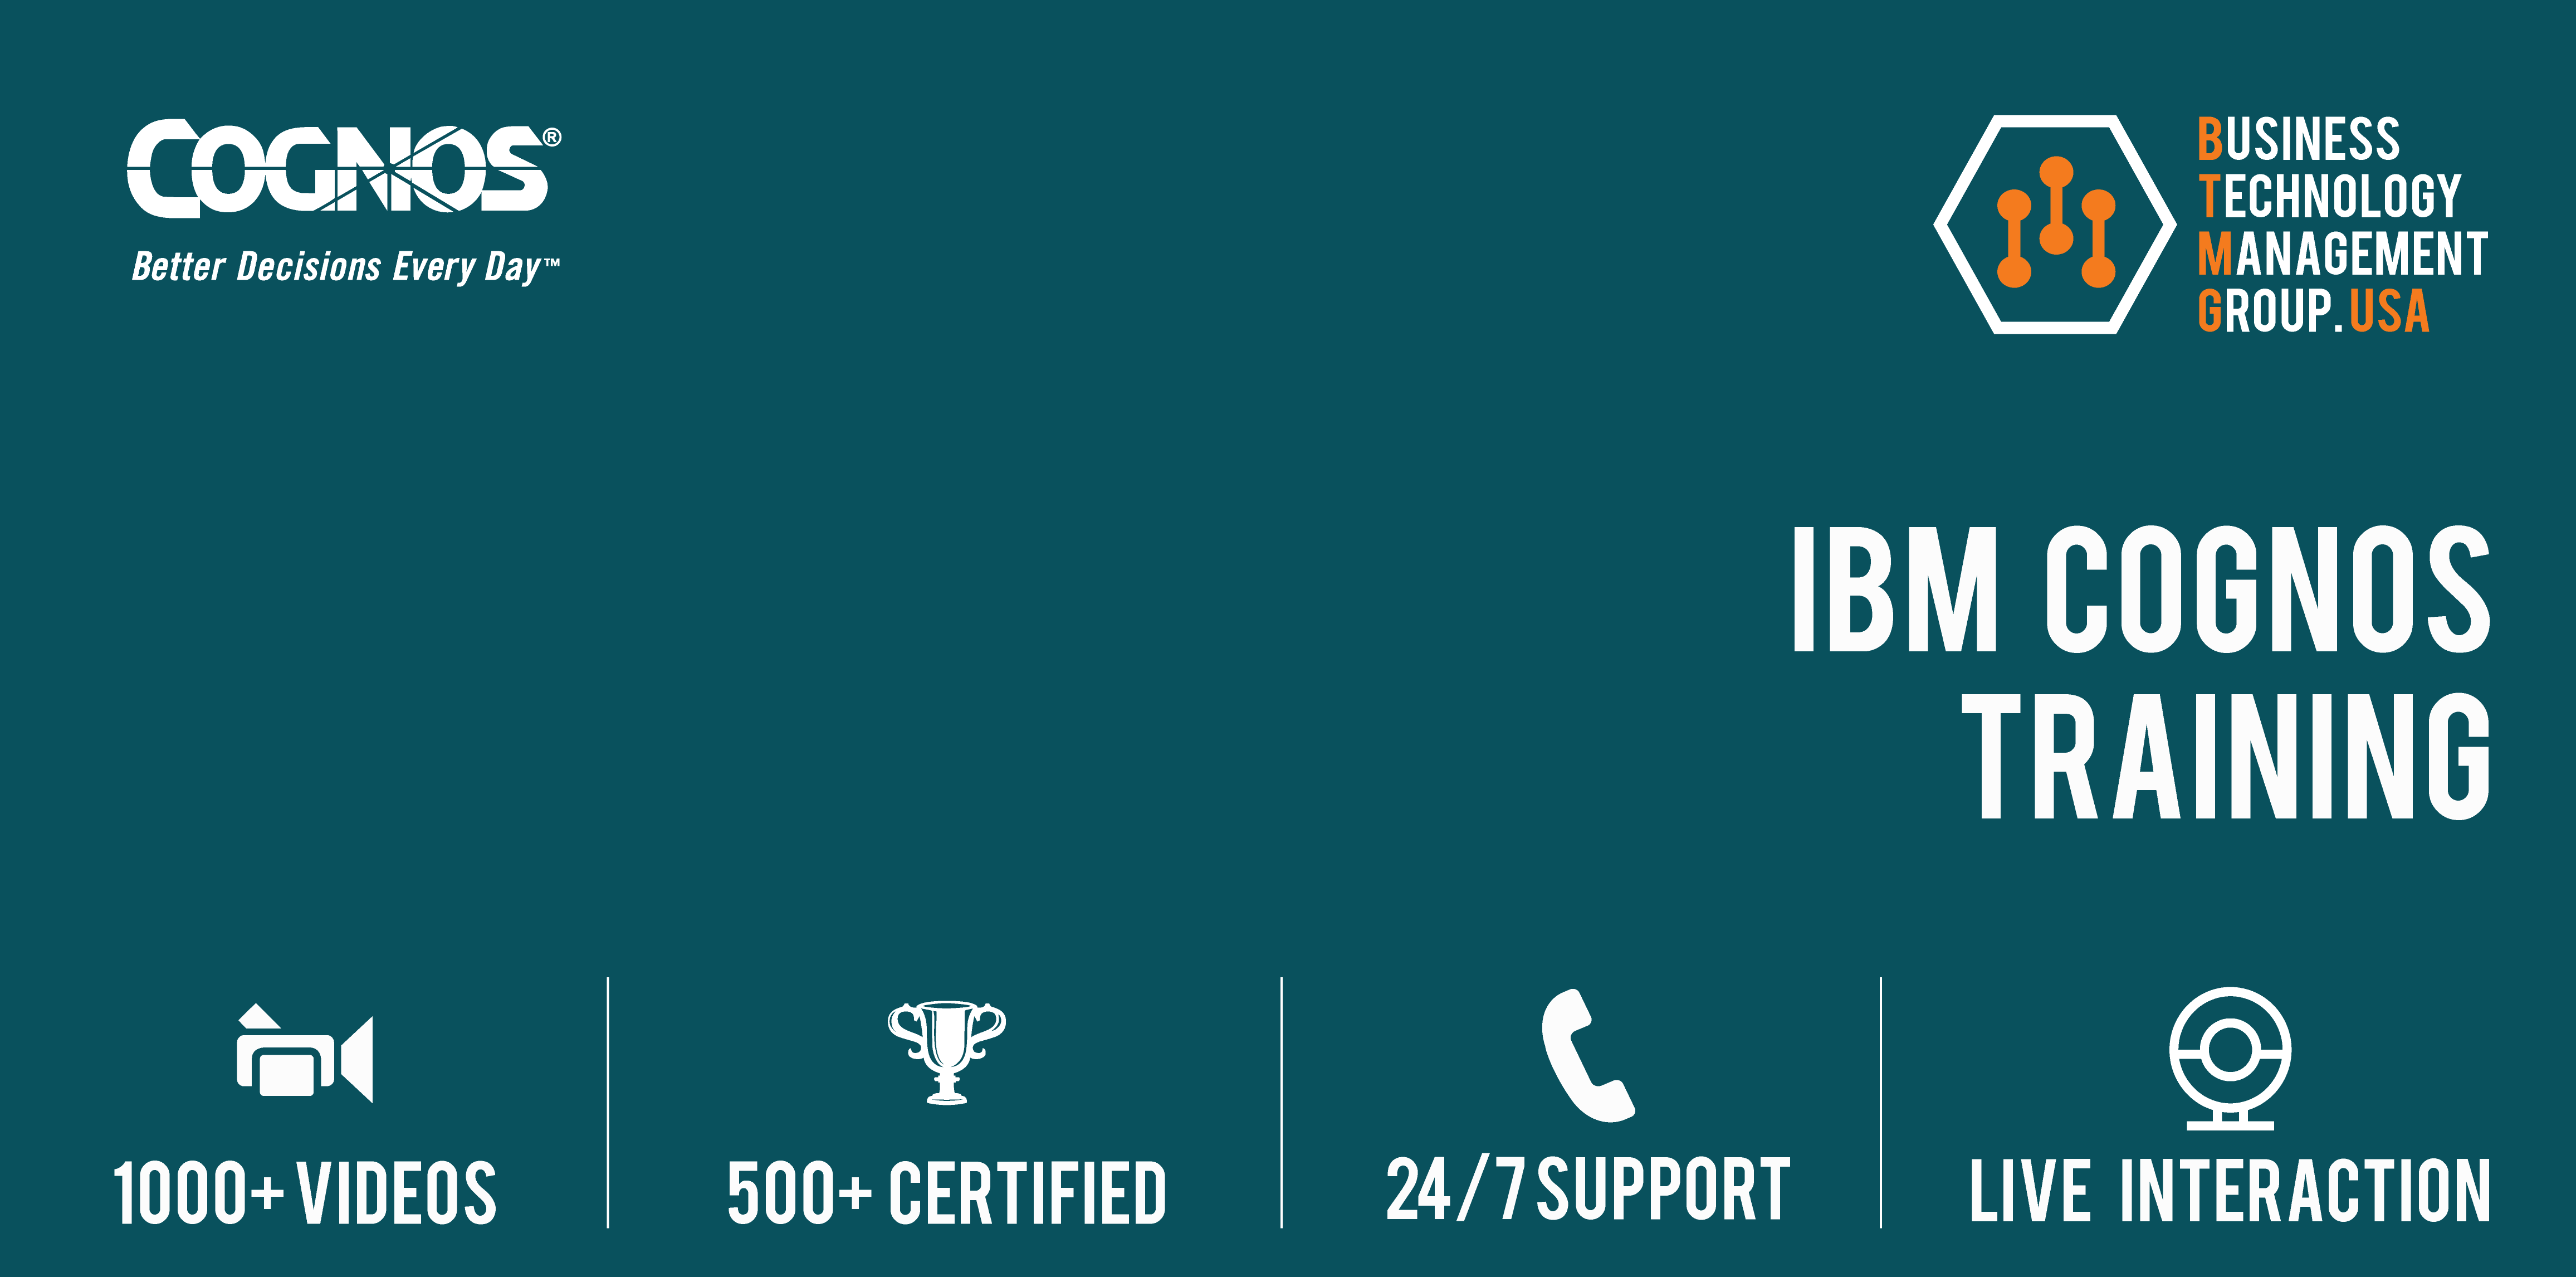 Ibm Cognos Course Offered By Btmg Usa With Job Placement Assistance